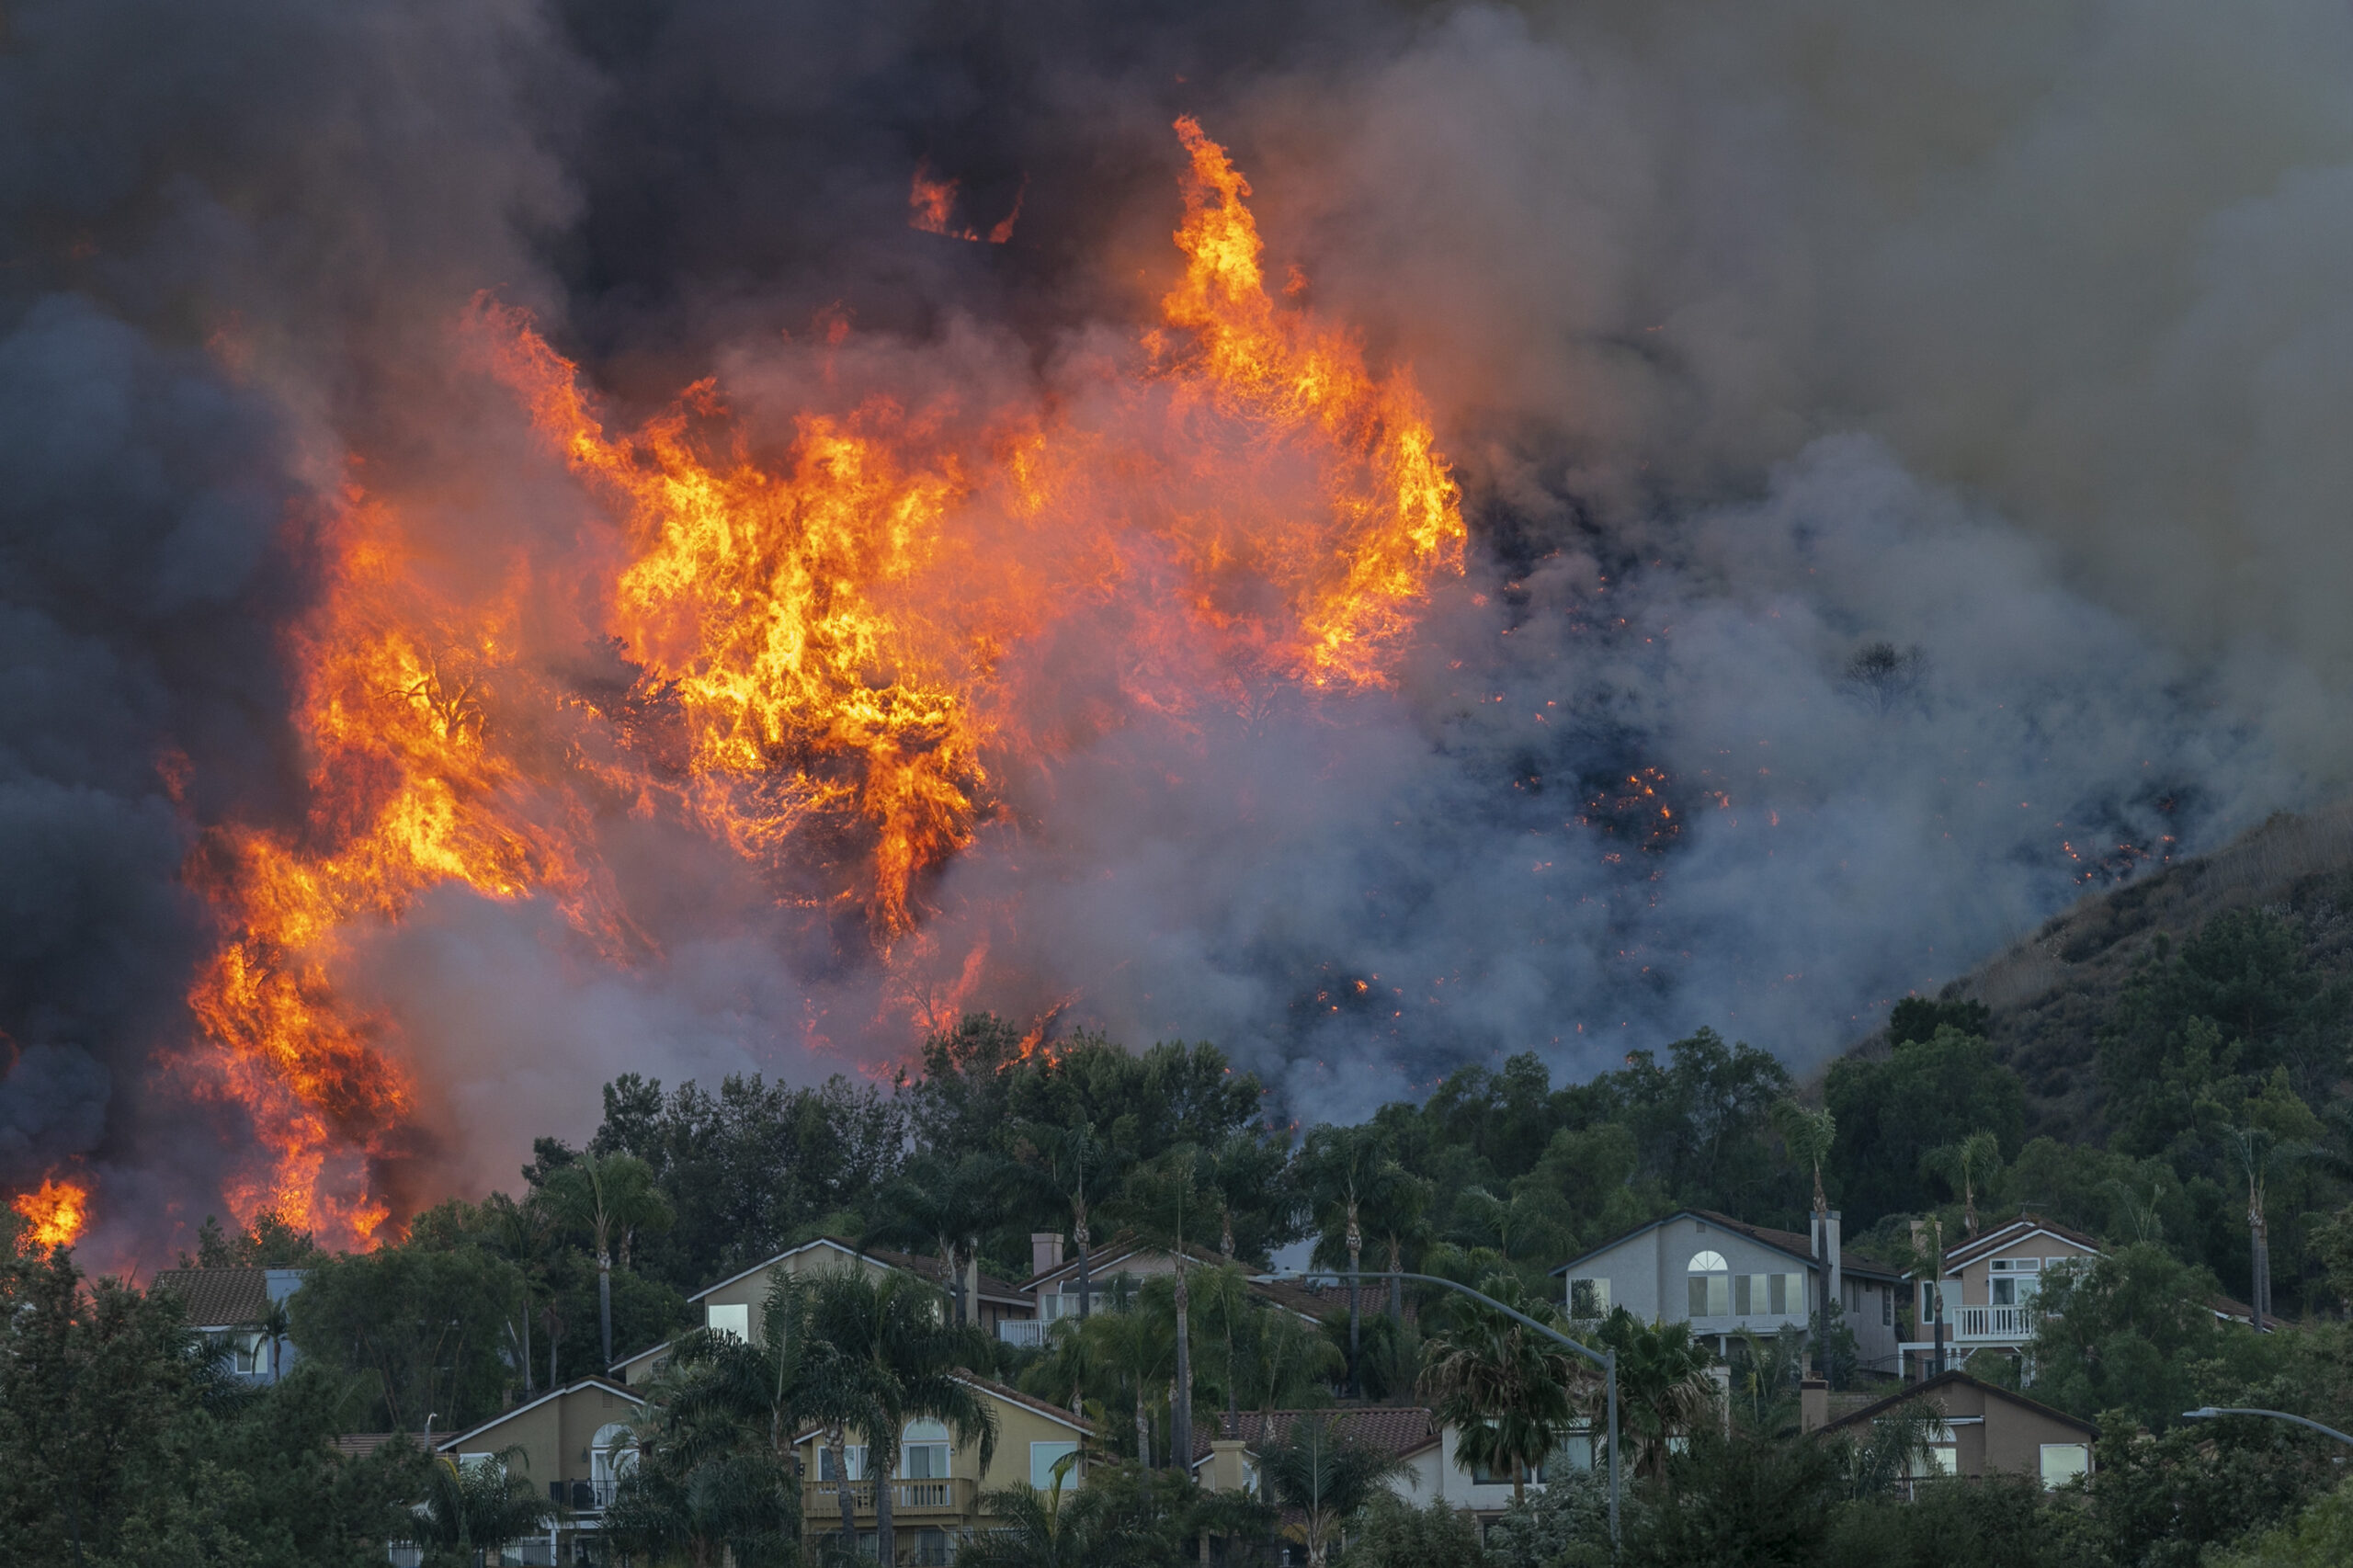 Flames rise near homes during the Blue Ridge Fire on Oct. 27, 2020 in Chino Hills, California. Credit: David McNew/Getty Images